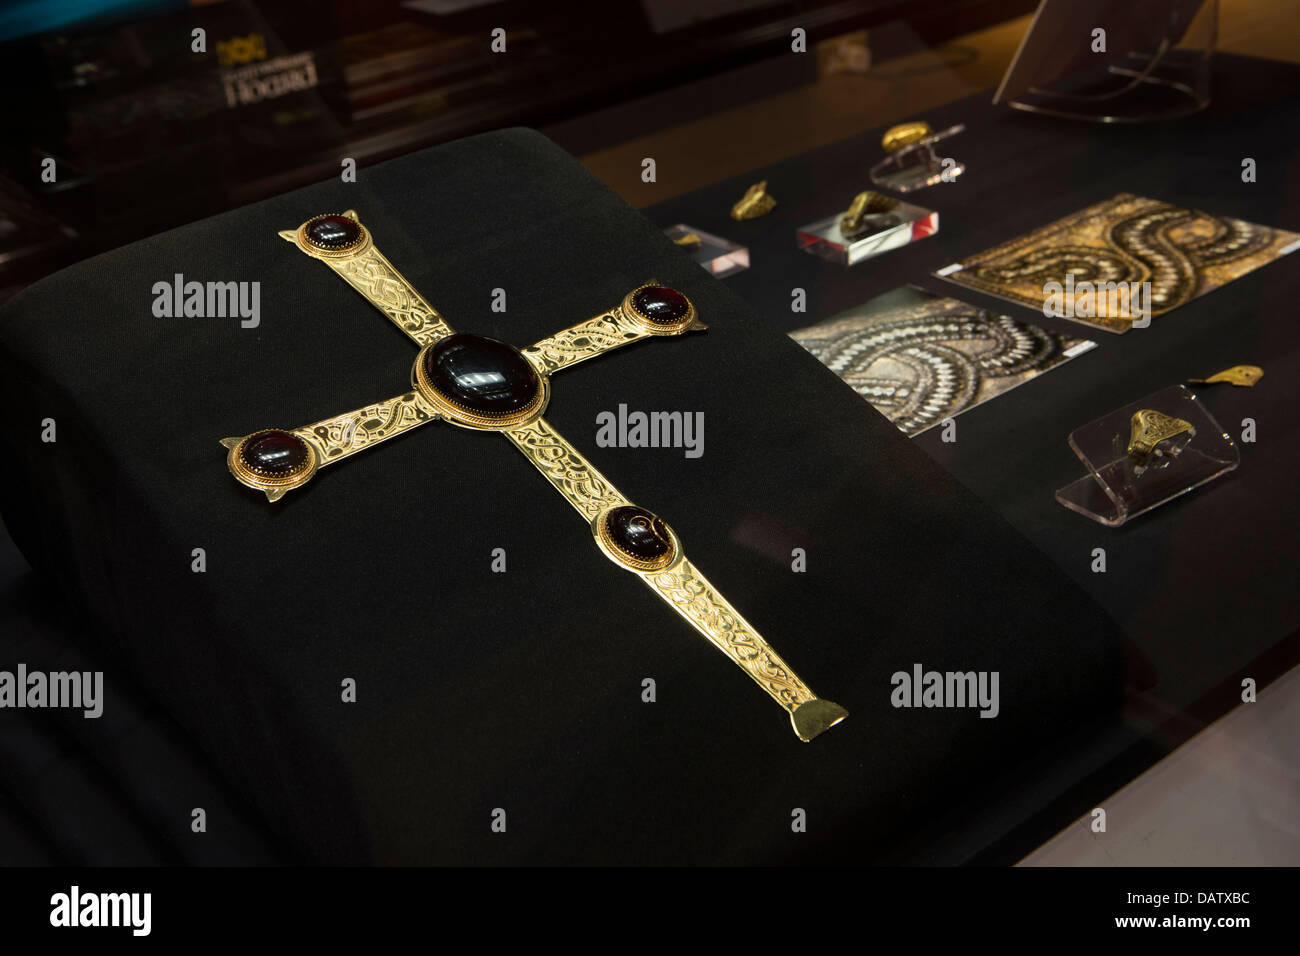 UK, England, Birmingham, Art Galley & Museum, recreation of gold cross found in the 2009 Saxon Hoard - Stock Image